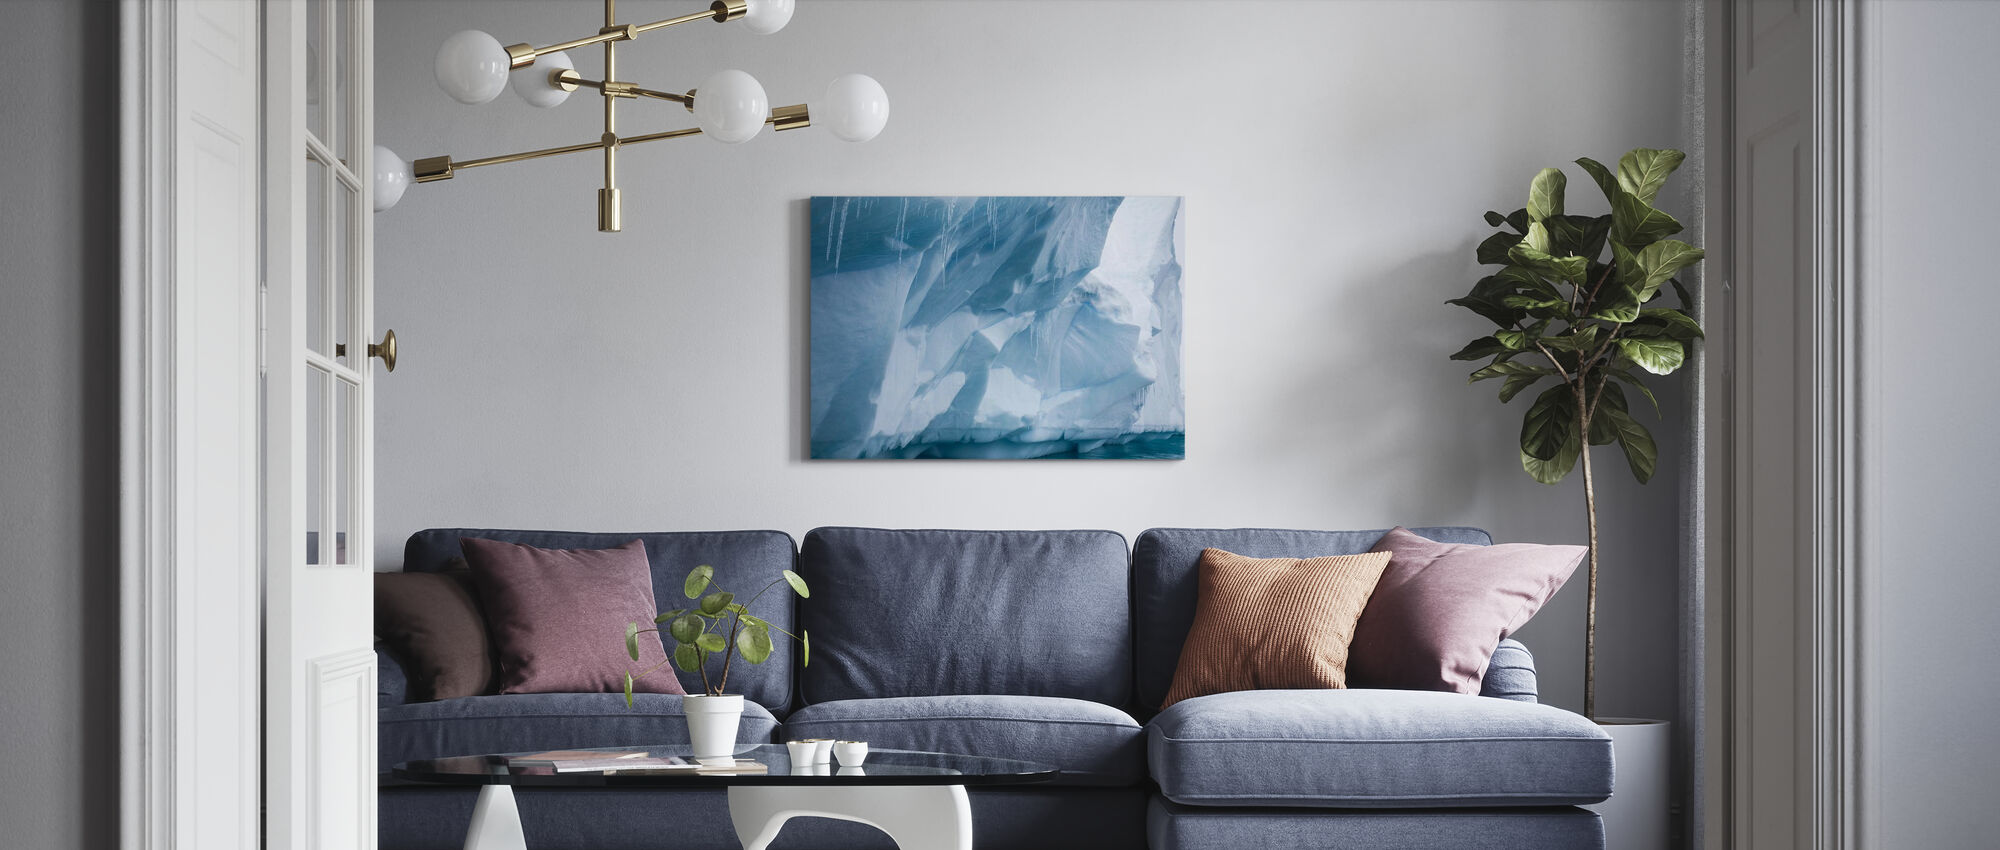 Icicle in Antarctica - Canvas print - Living Room